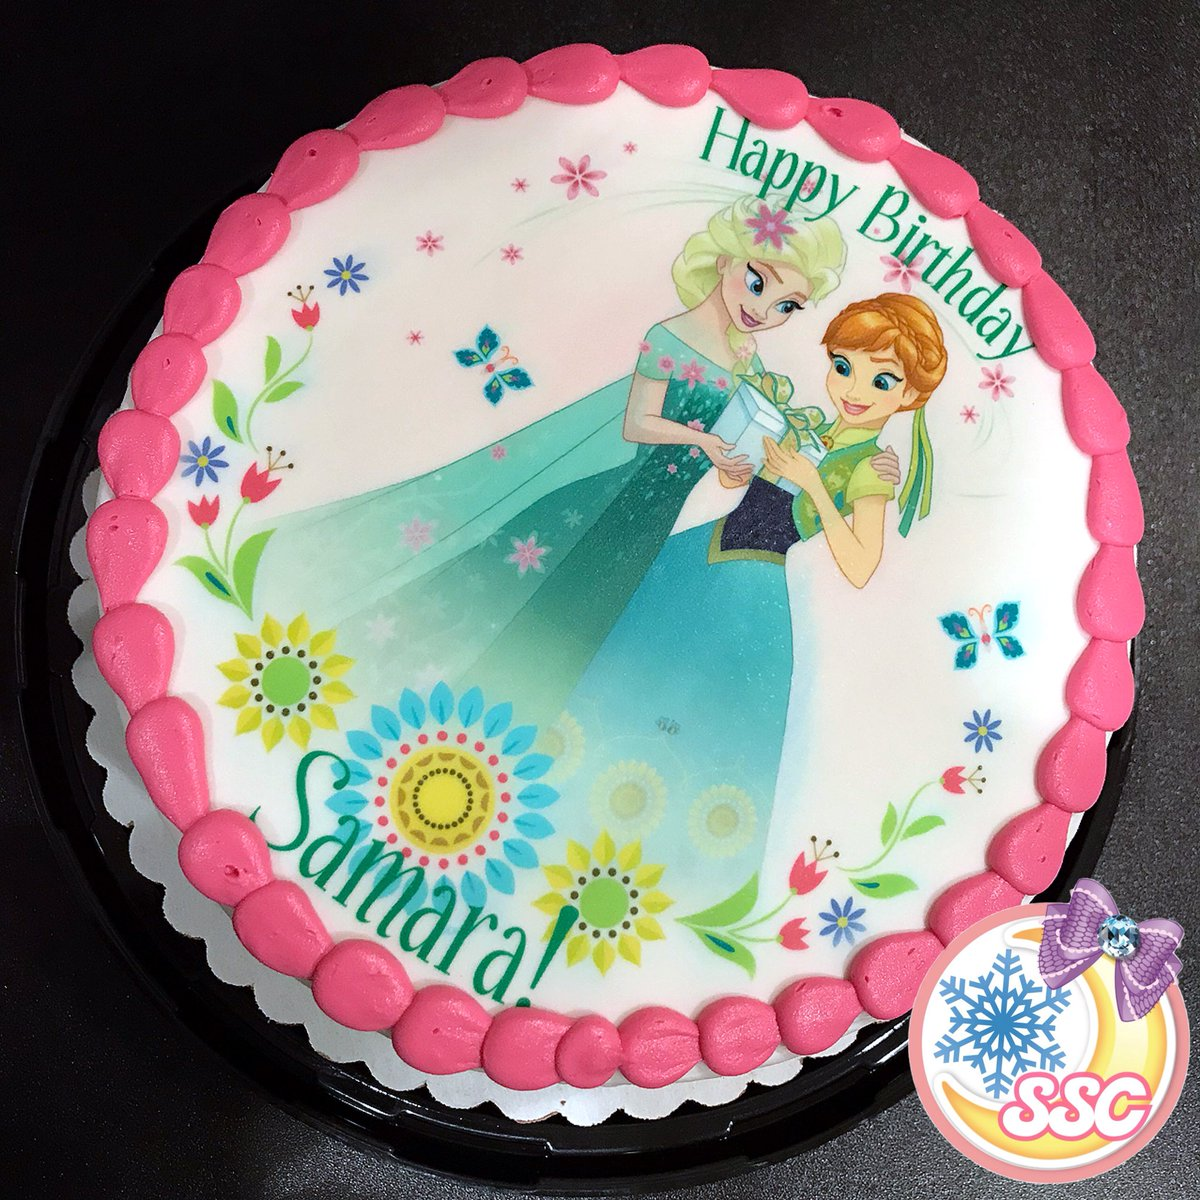 Saior Samara On Twitter Here Is The Birthday Cake My Husband Ewesley83 Got For Me Today Its Beautiful